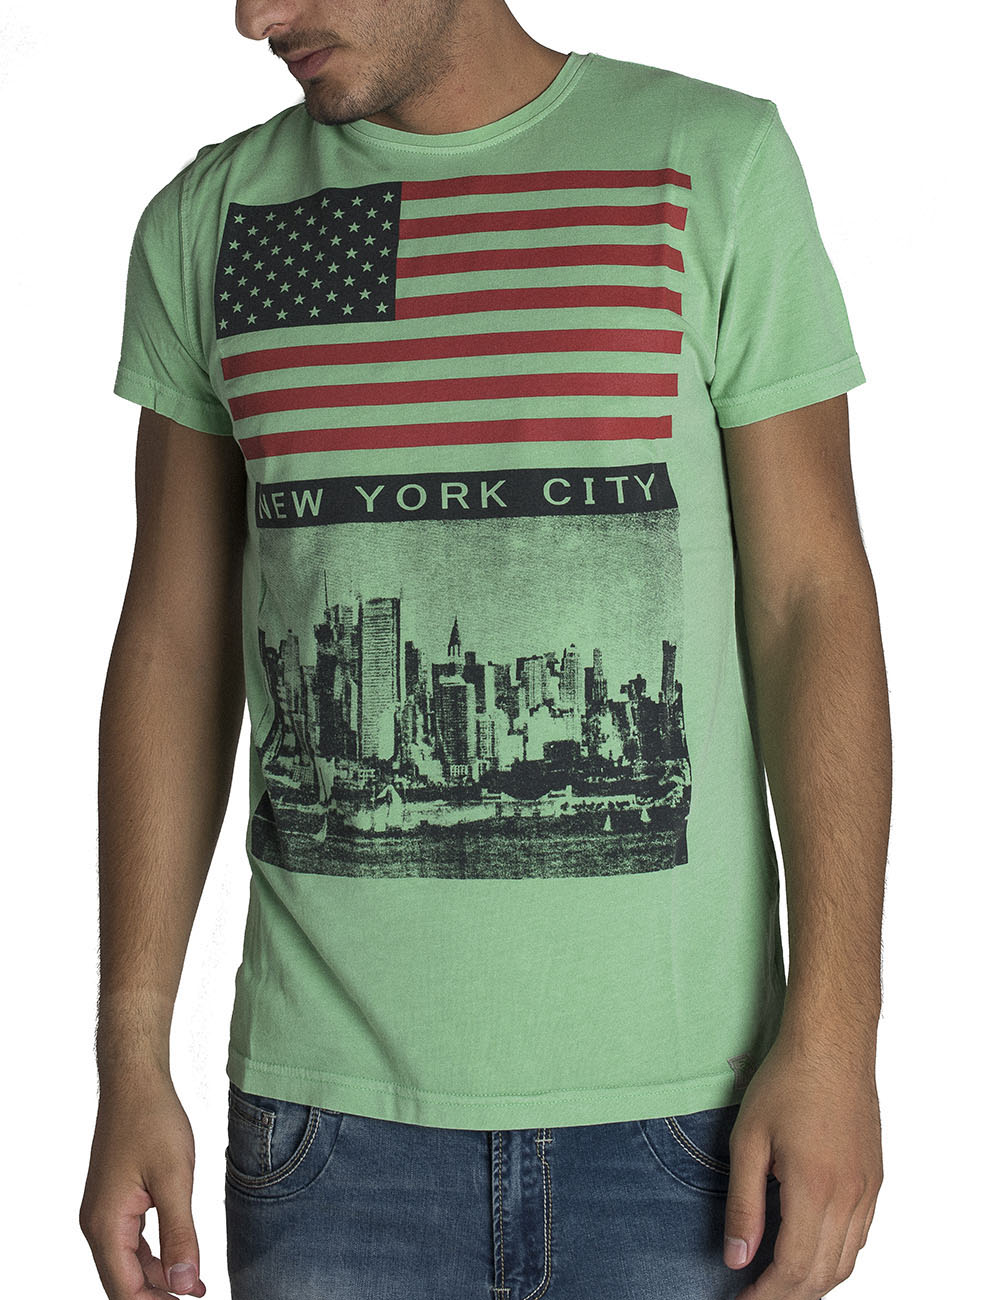 T-Shirt Uomo New York City NYC Estiva Slim Fit Puro Cotone M-3XL Superior 33757